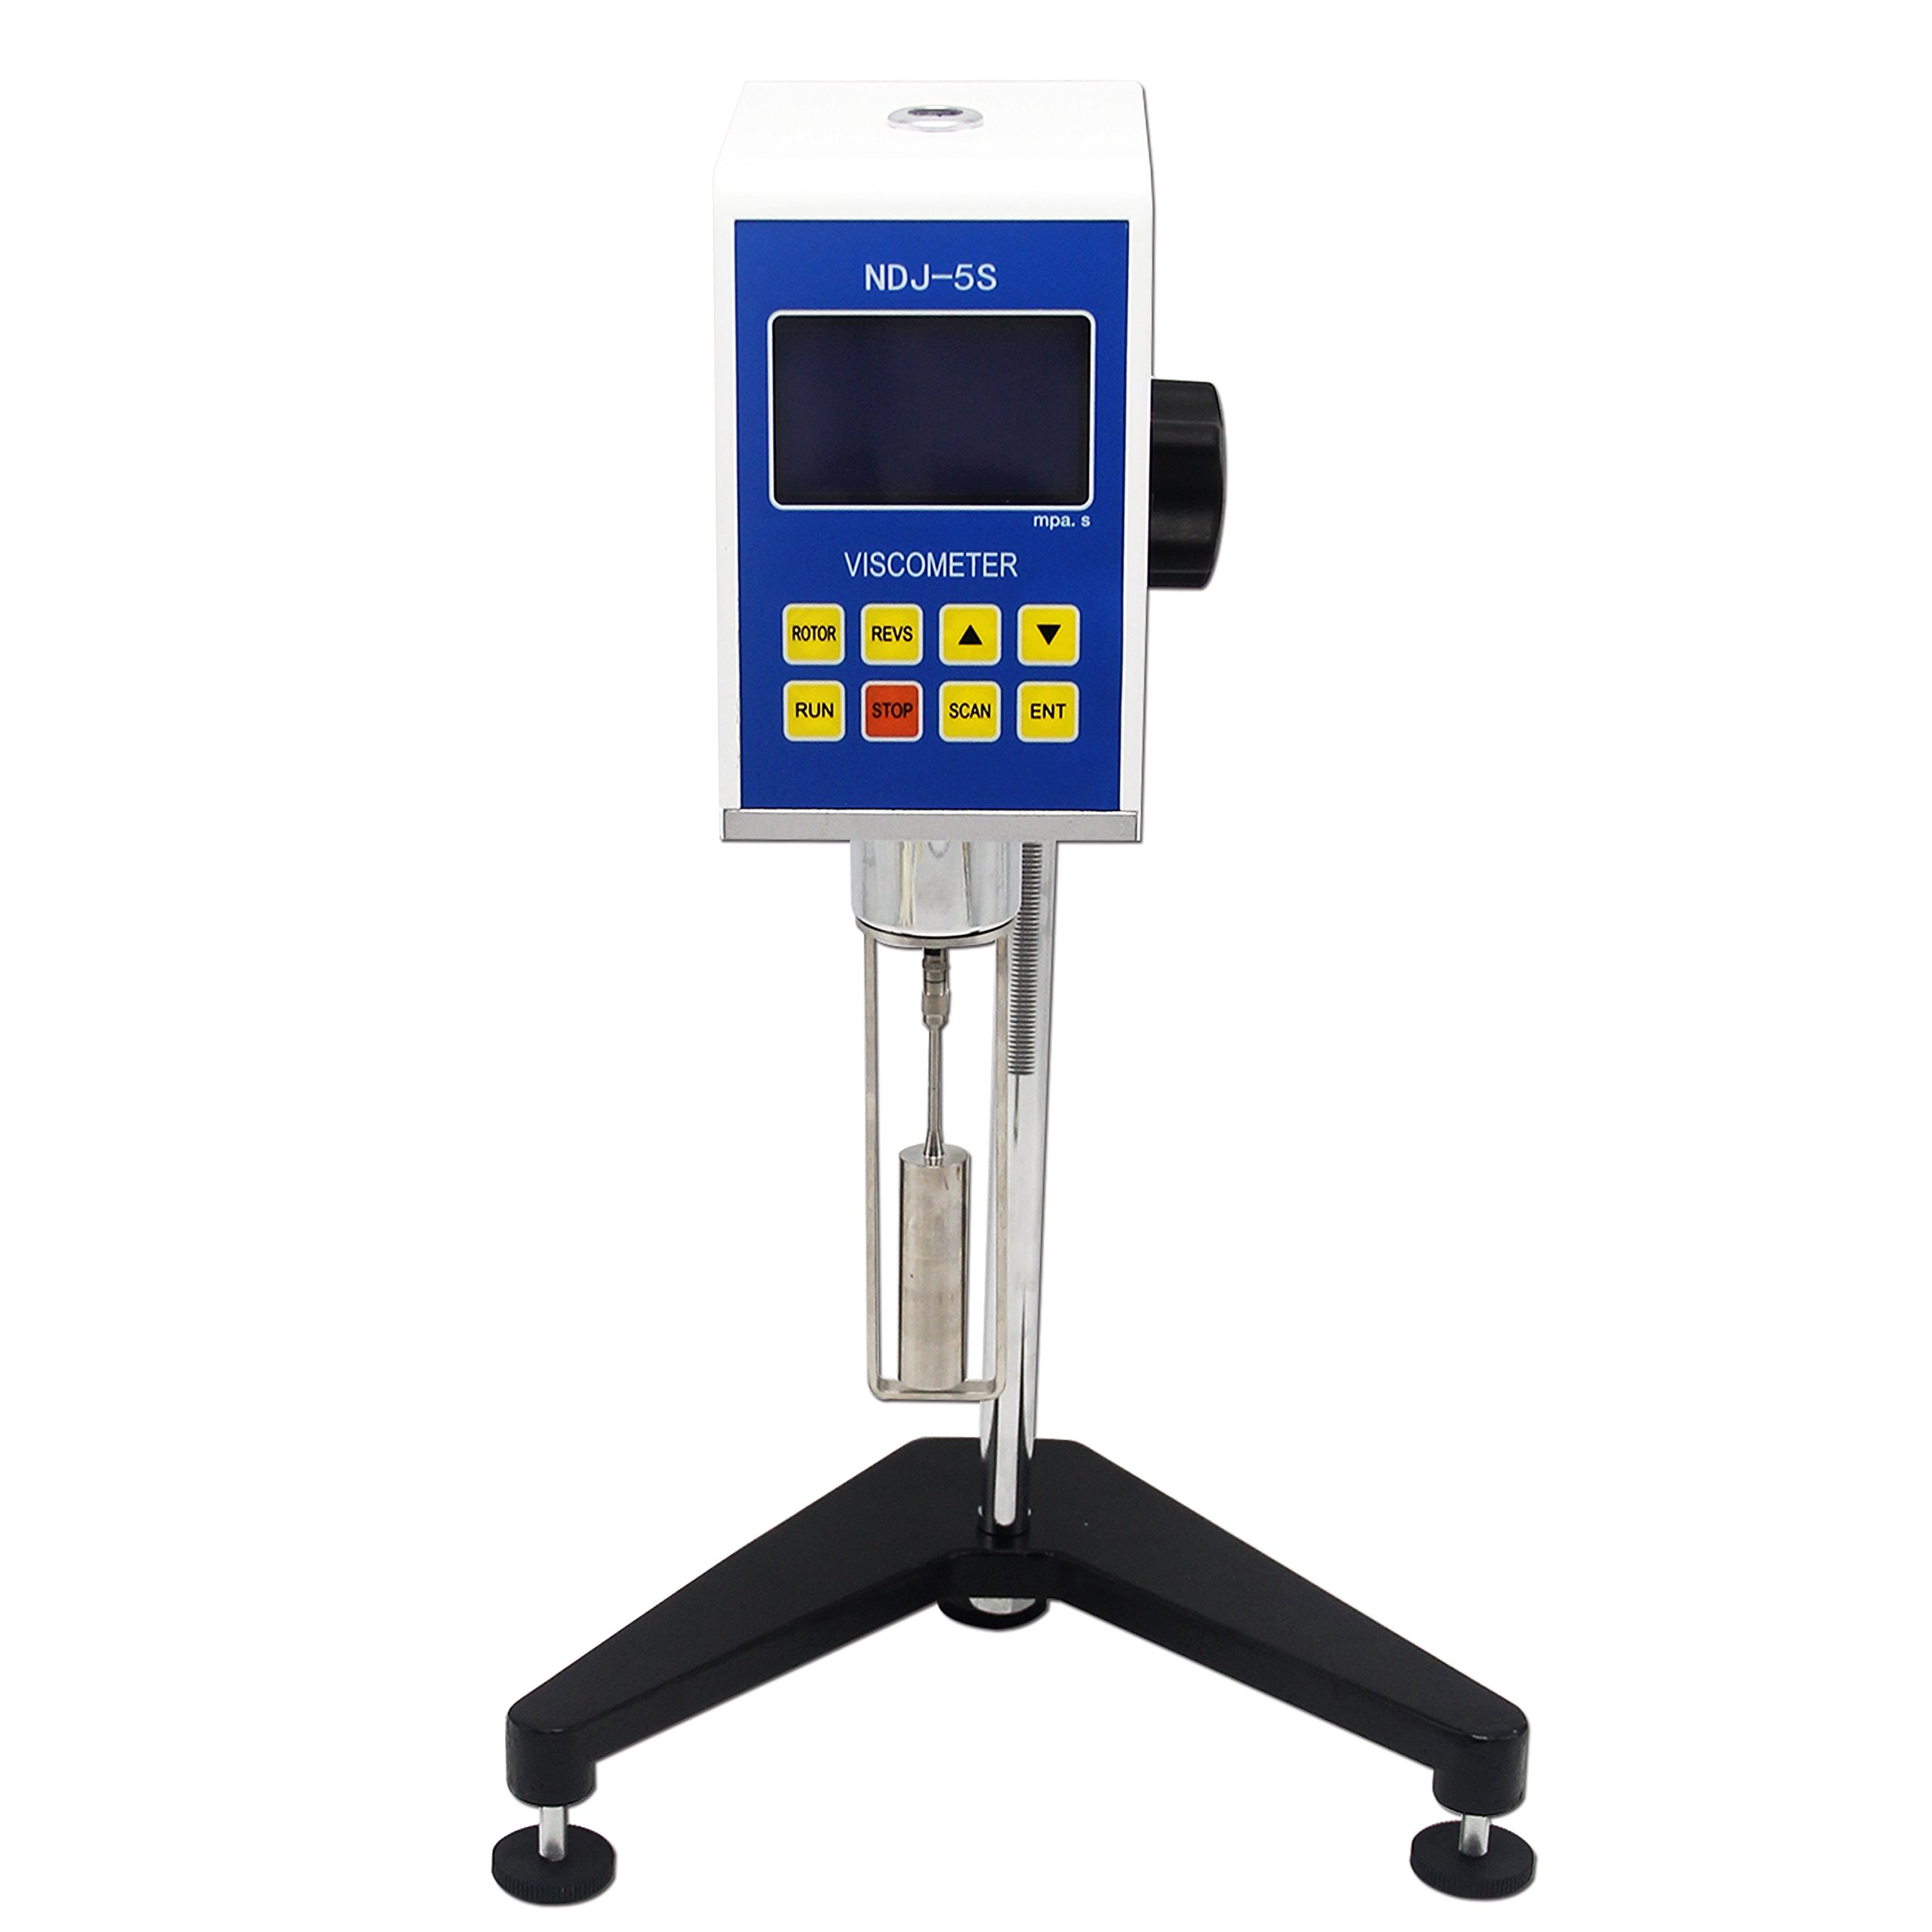 CGOLDENWALL NDJ-5S Digital Rotational Viscosity Meter Viscometer Rotary visometer 110V/220V 1~100,000mPa.s Accuracy:+-3.0% Reliable Quality by CGOLDENWALL